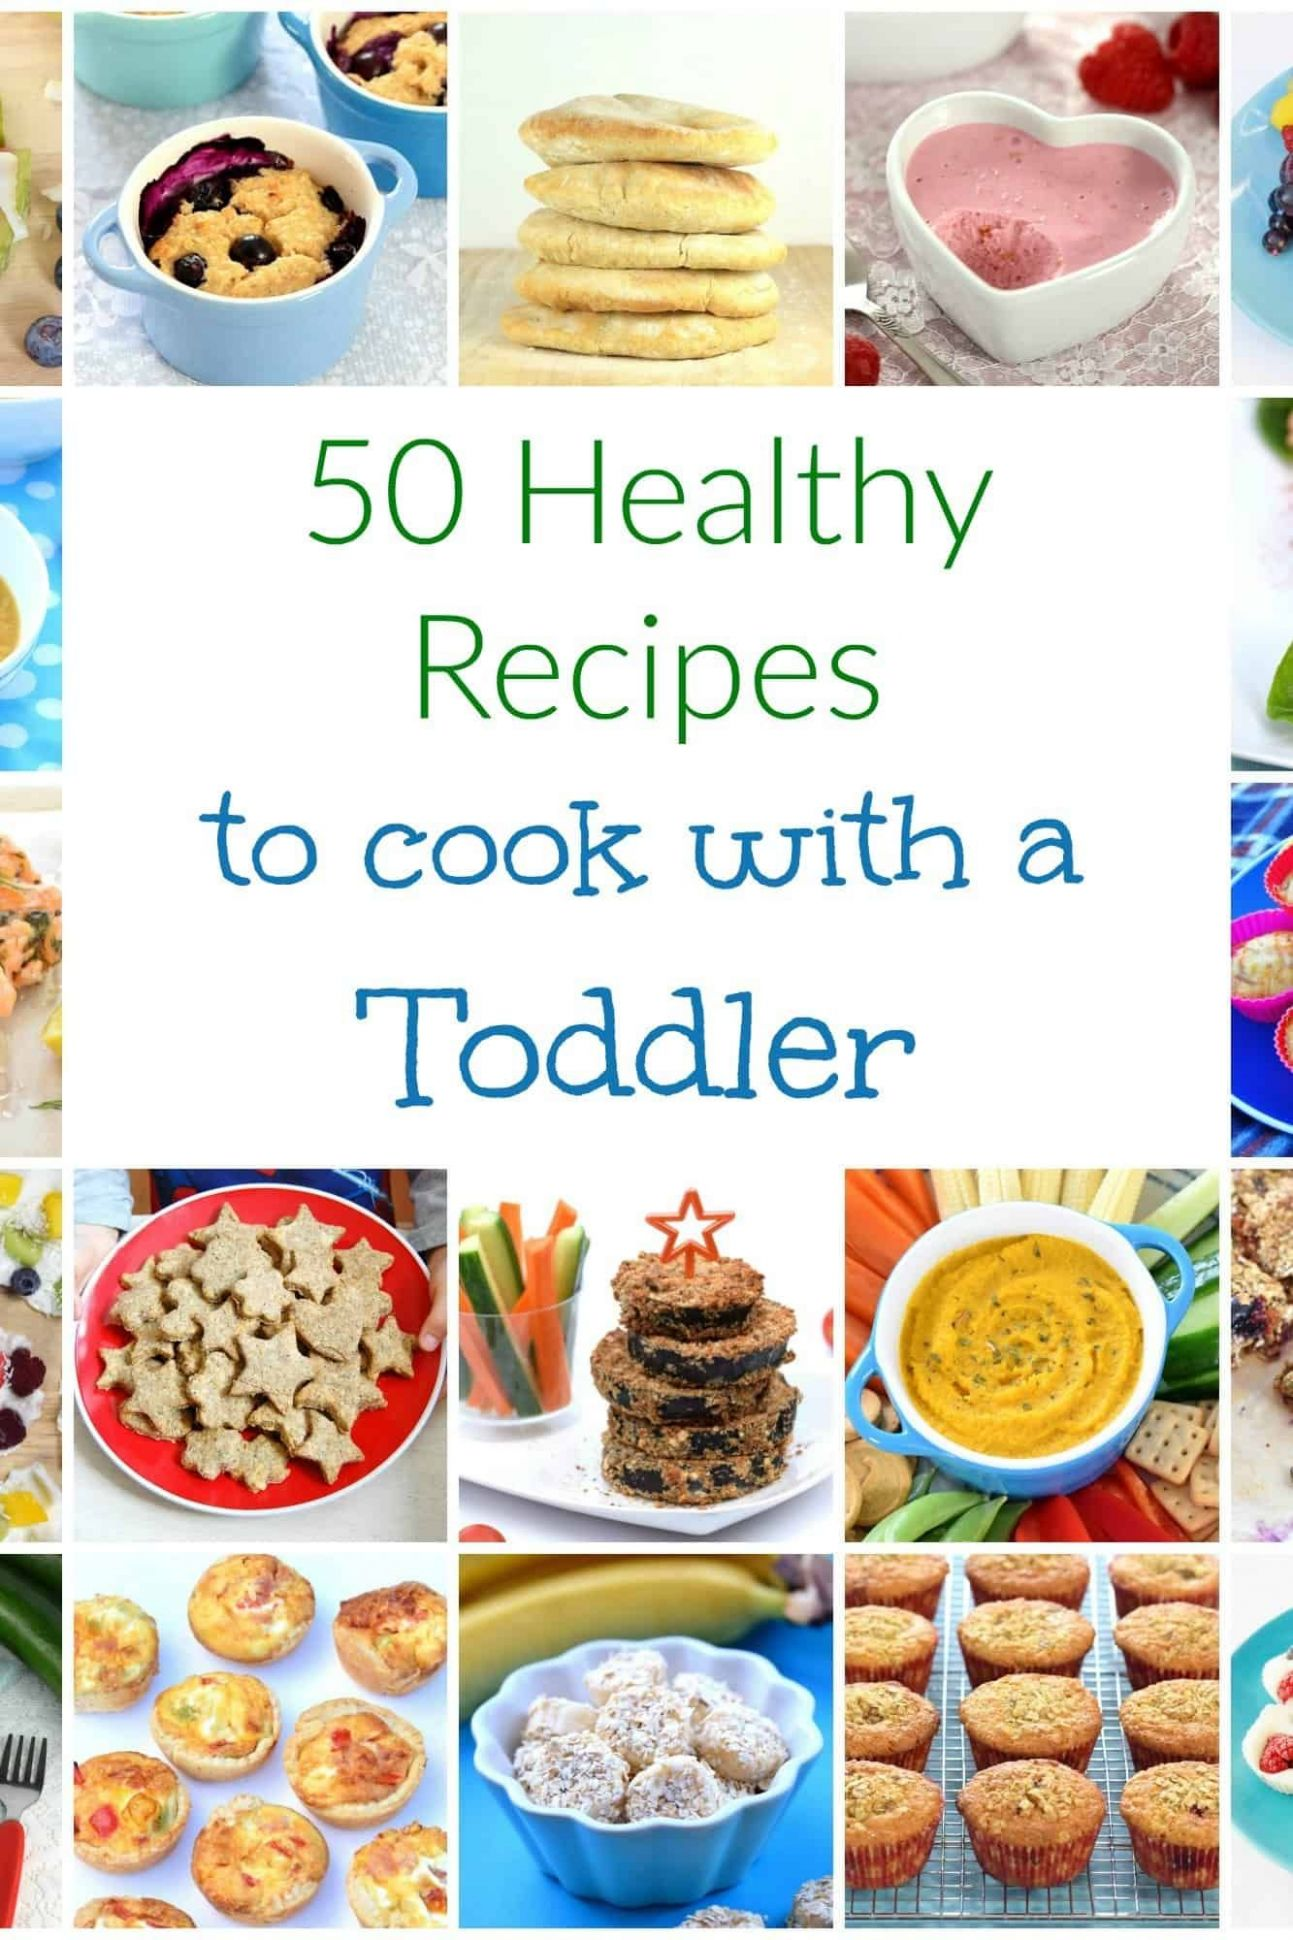 11 Healthy Recipes to Cook with Toddlers | Kids cooking recipes ..